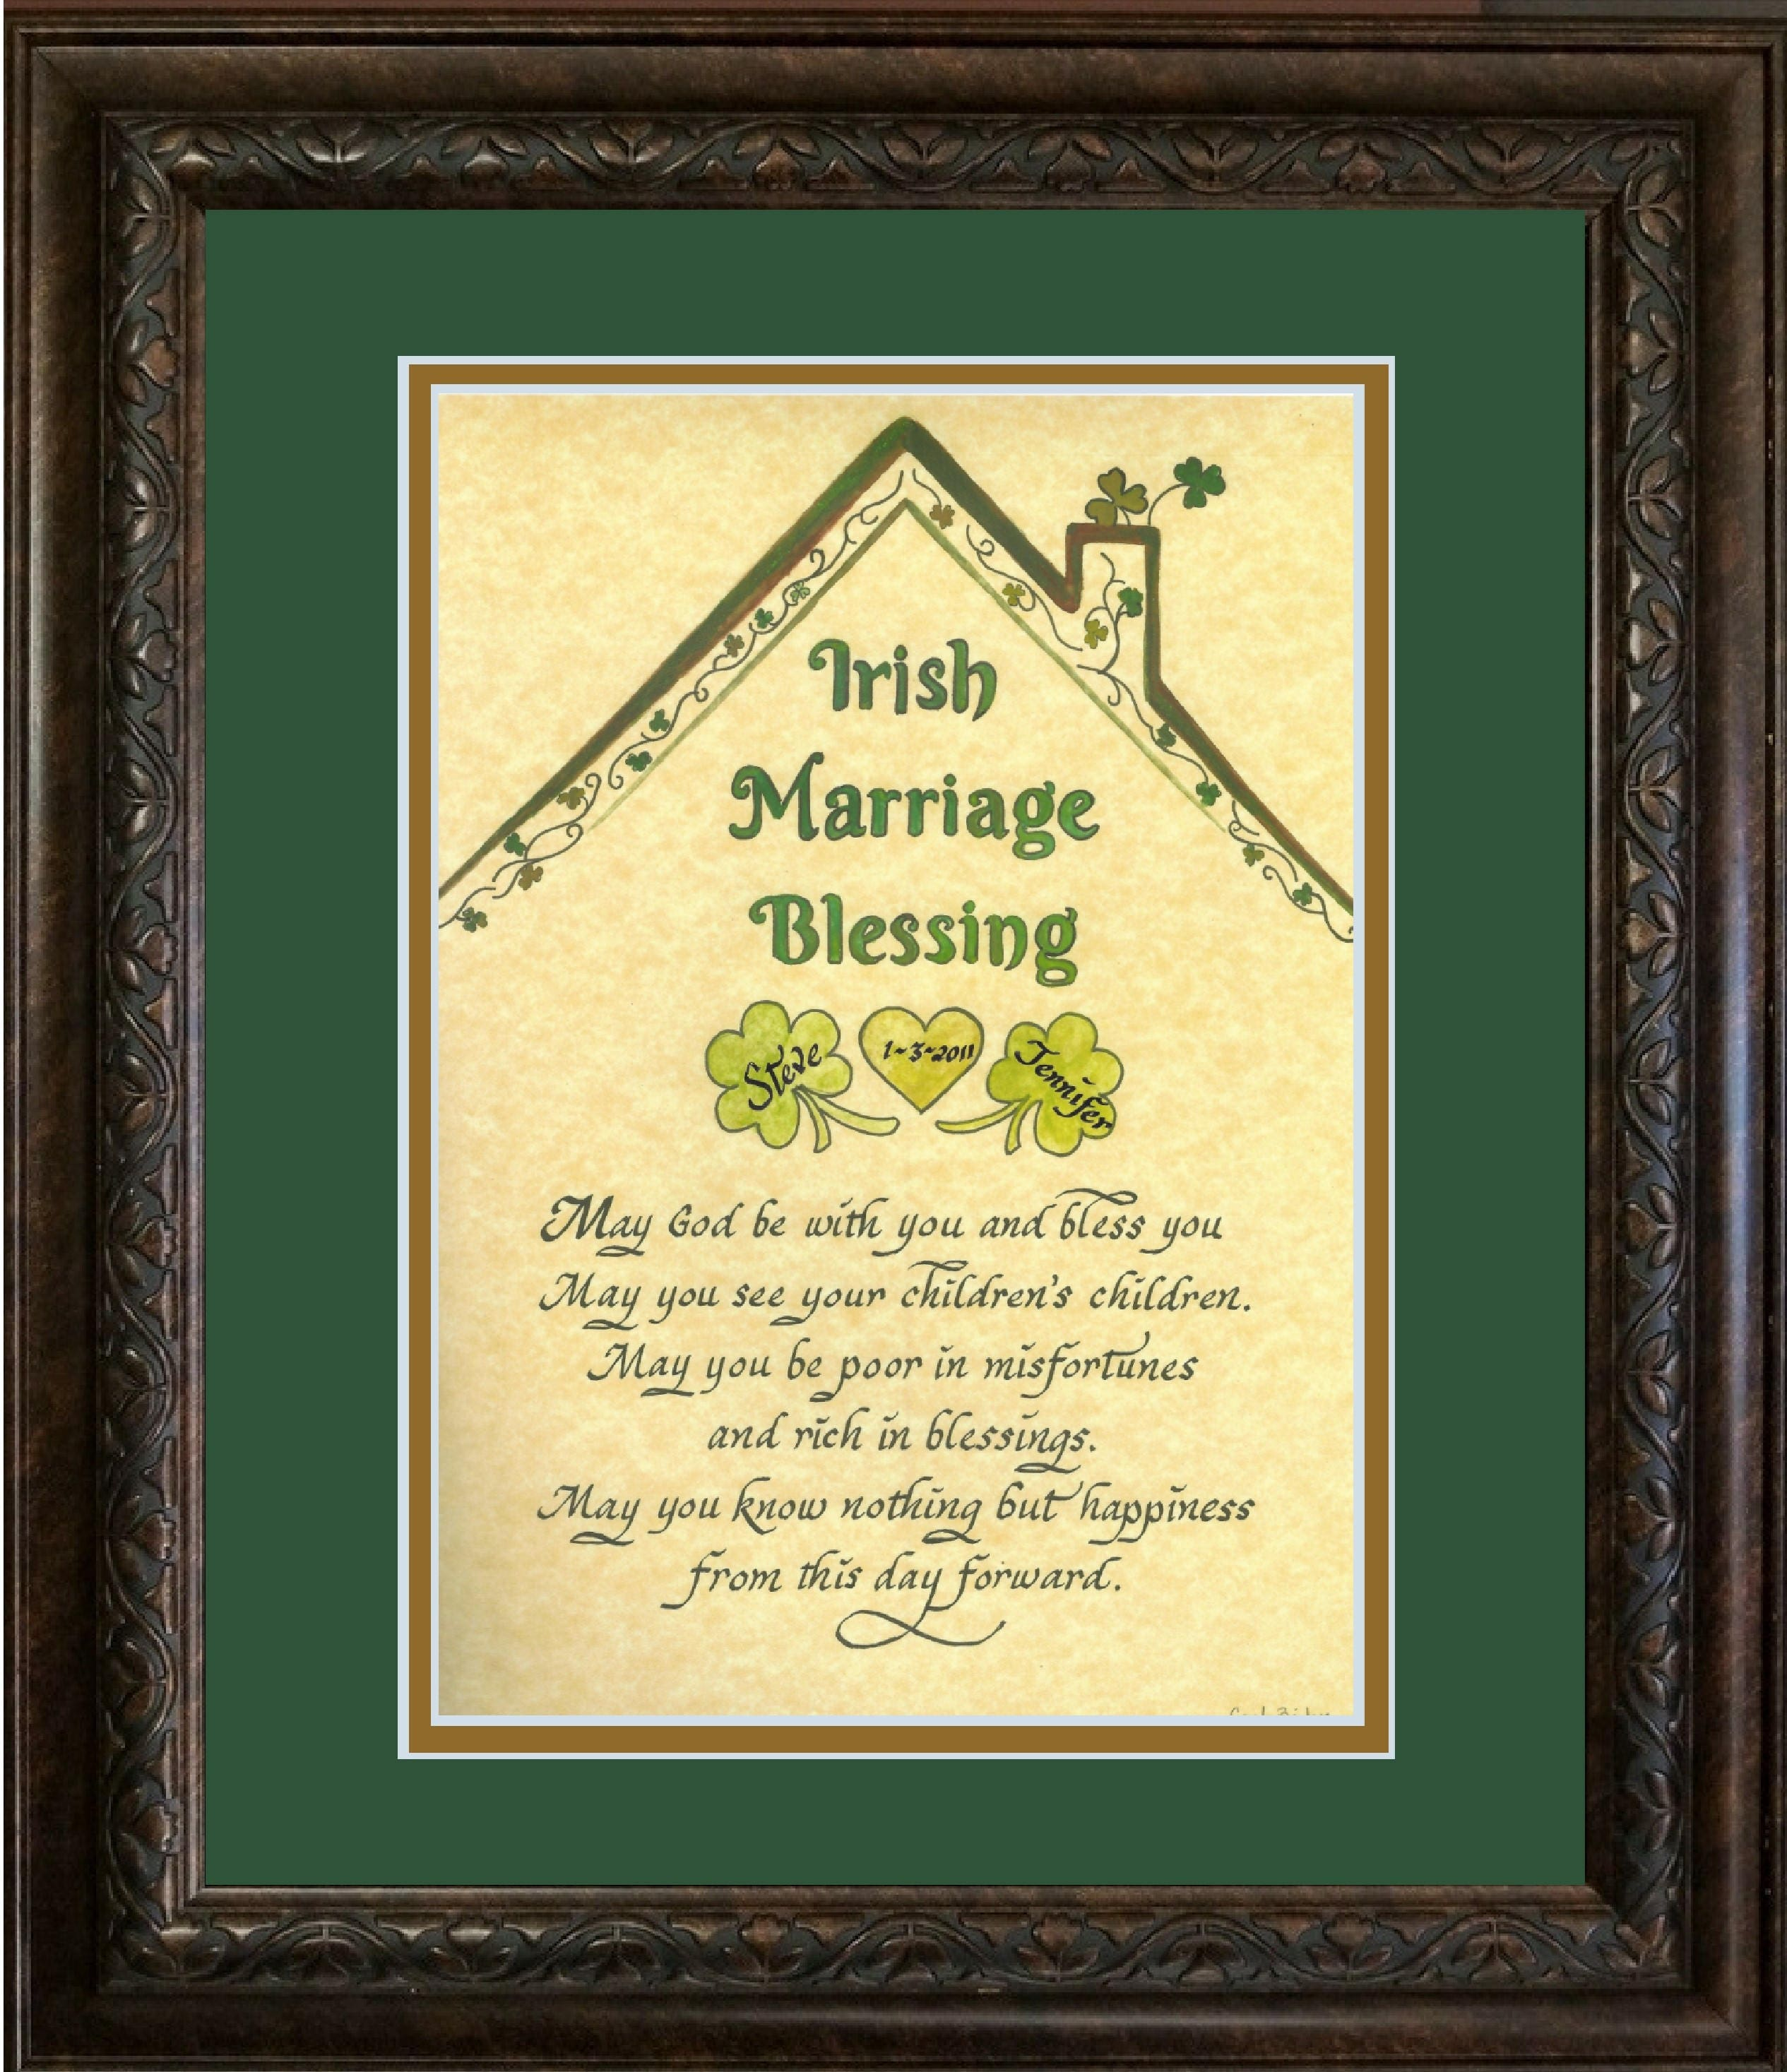 Irish Blessing Wedding Marriage Blessing with shamrocks and